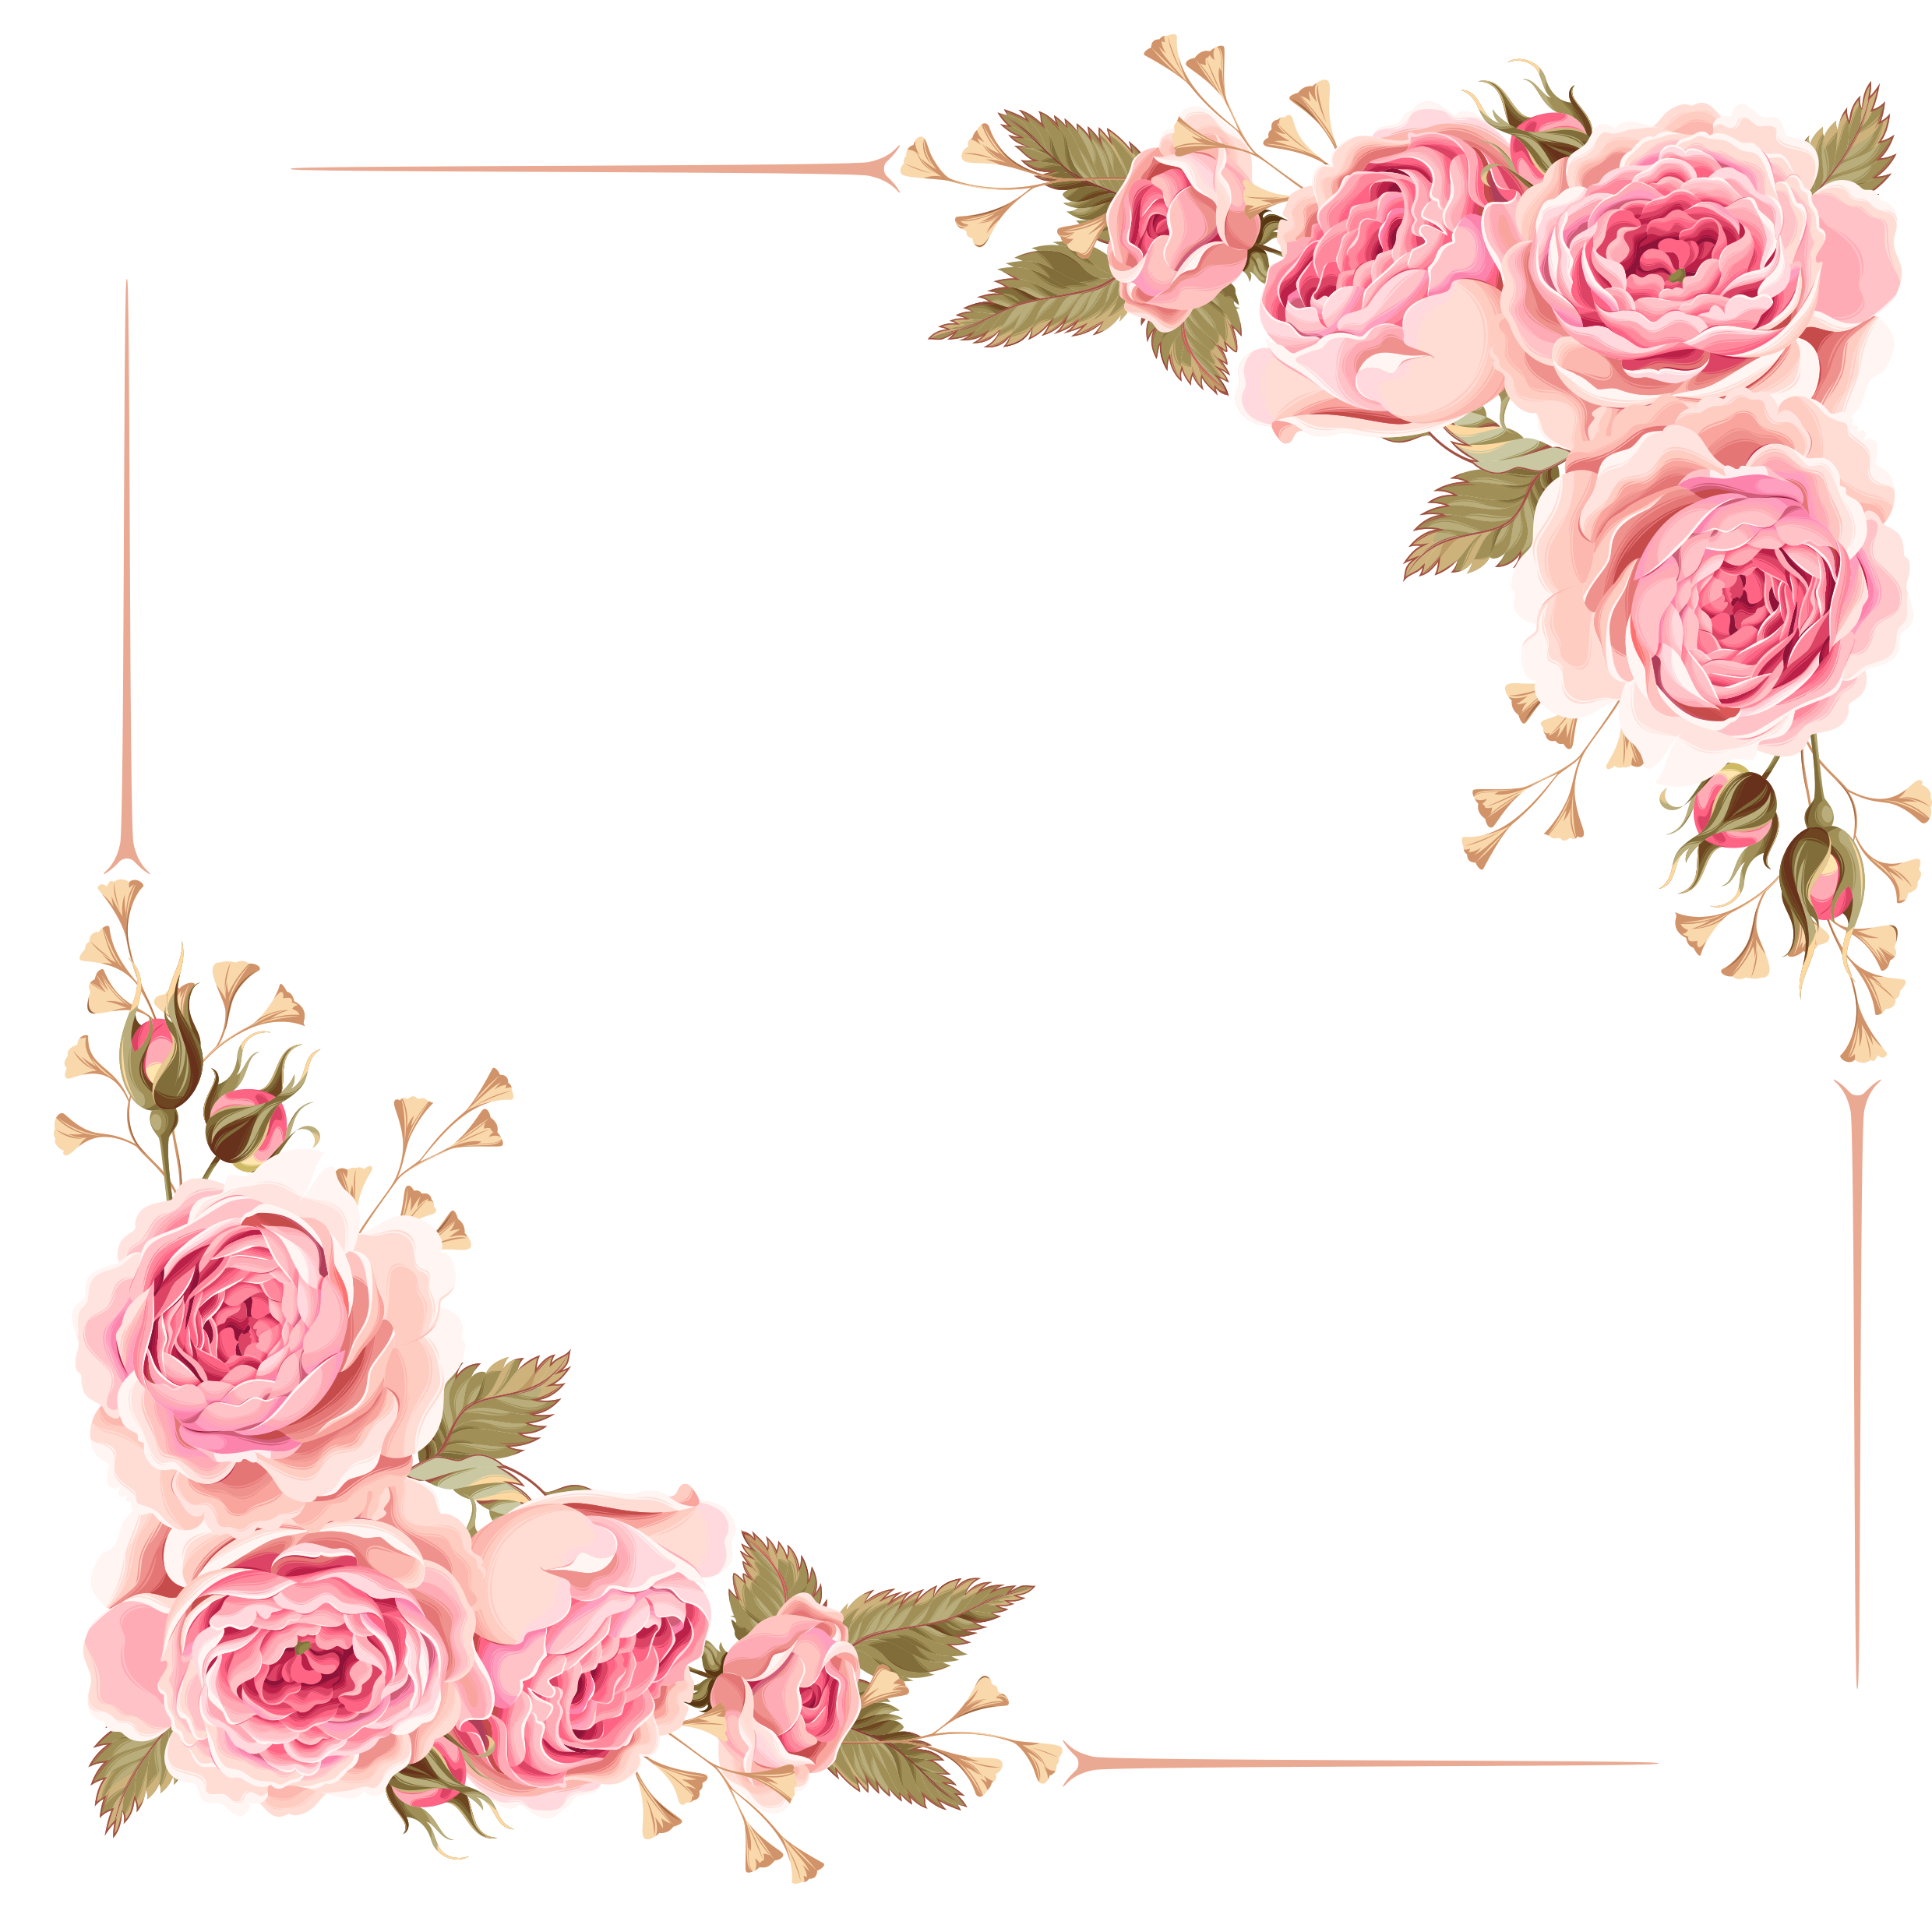 CLIPART WALLPAPER BLINK Peach Flower Clipart transparent